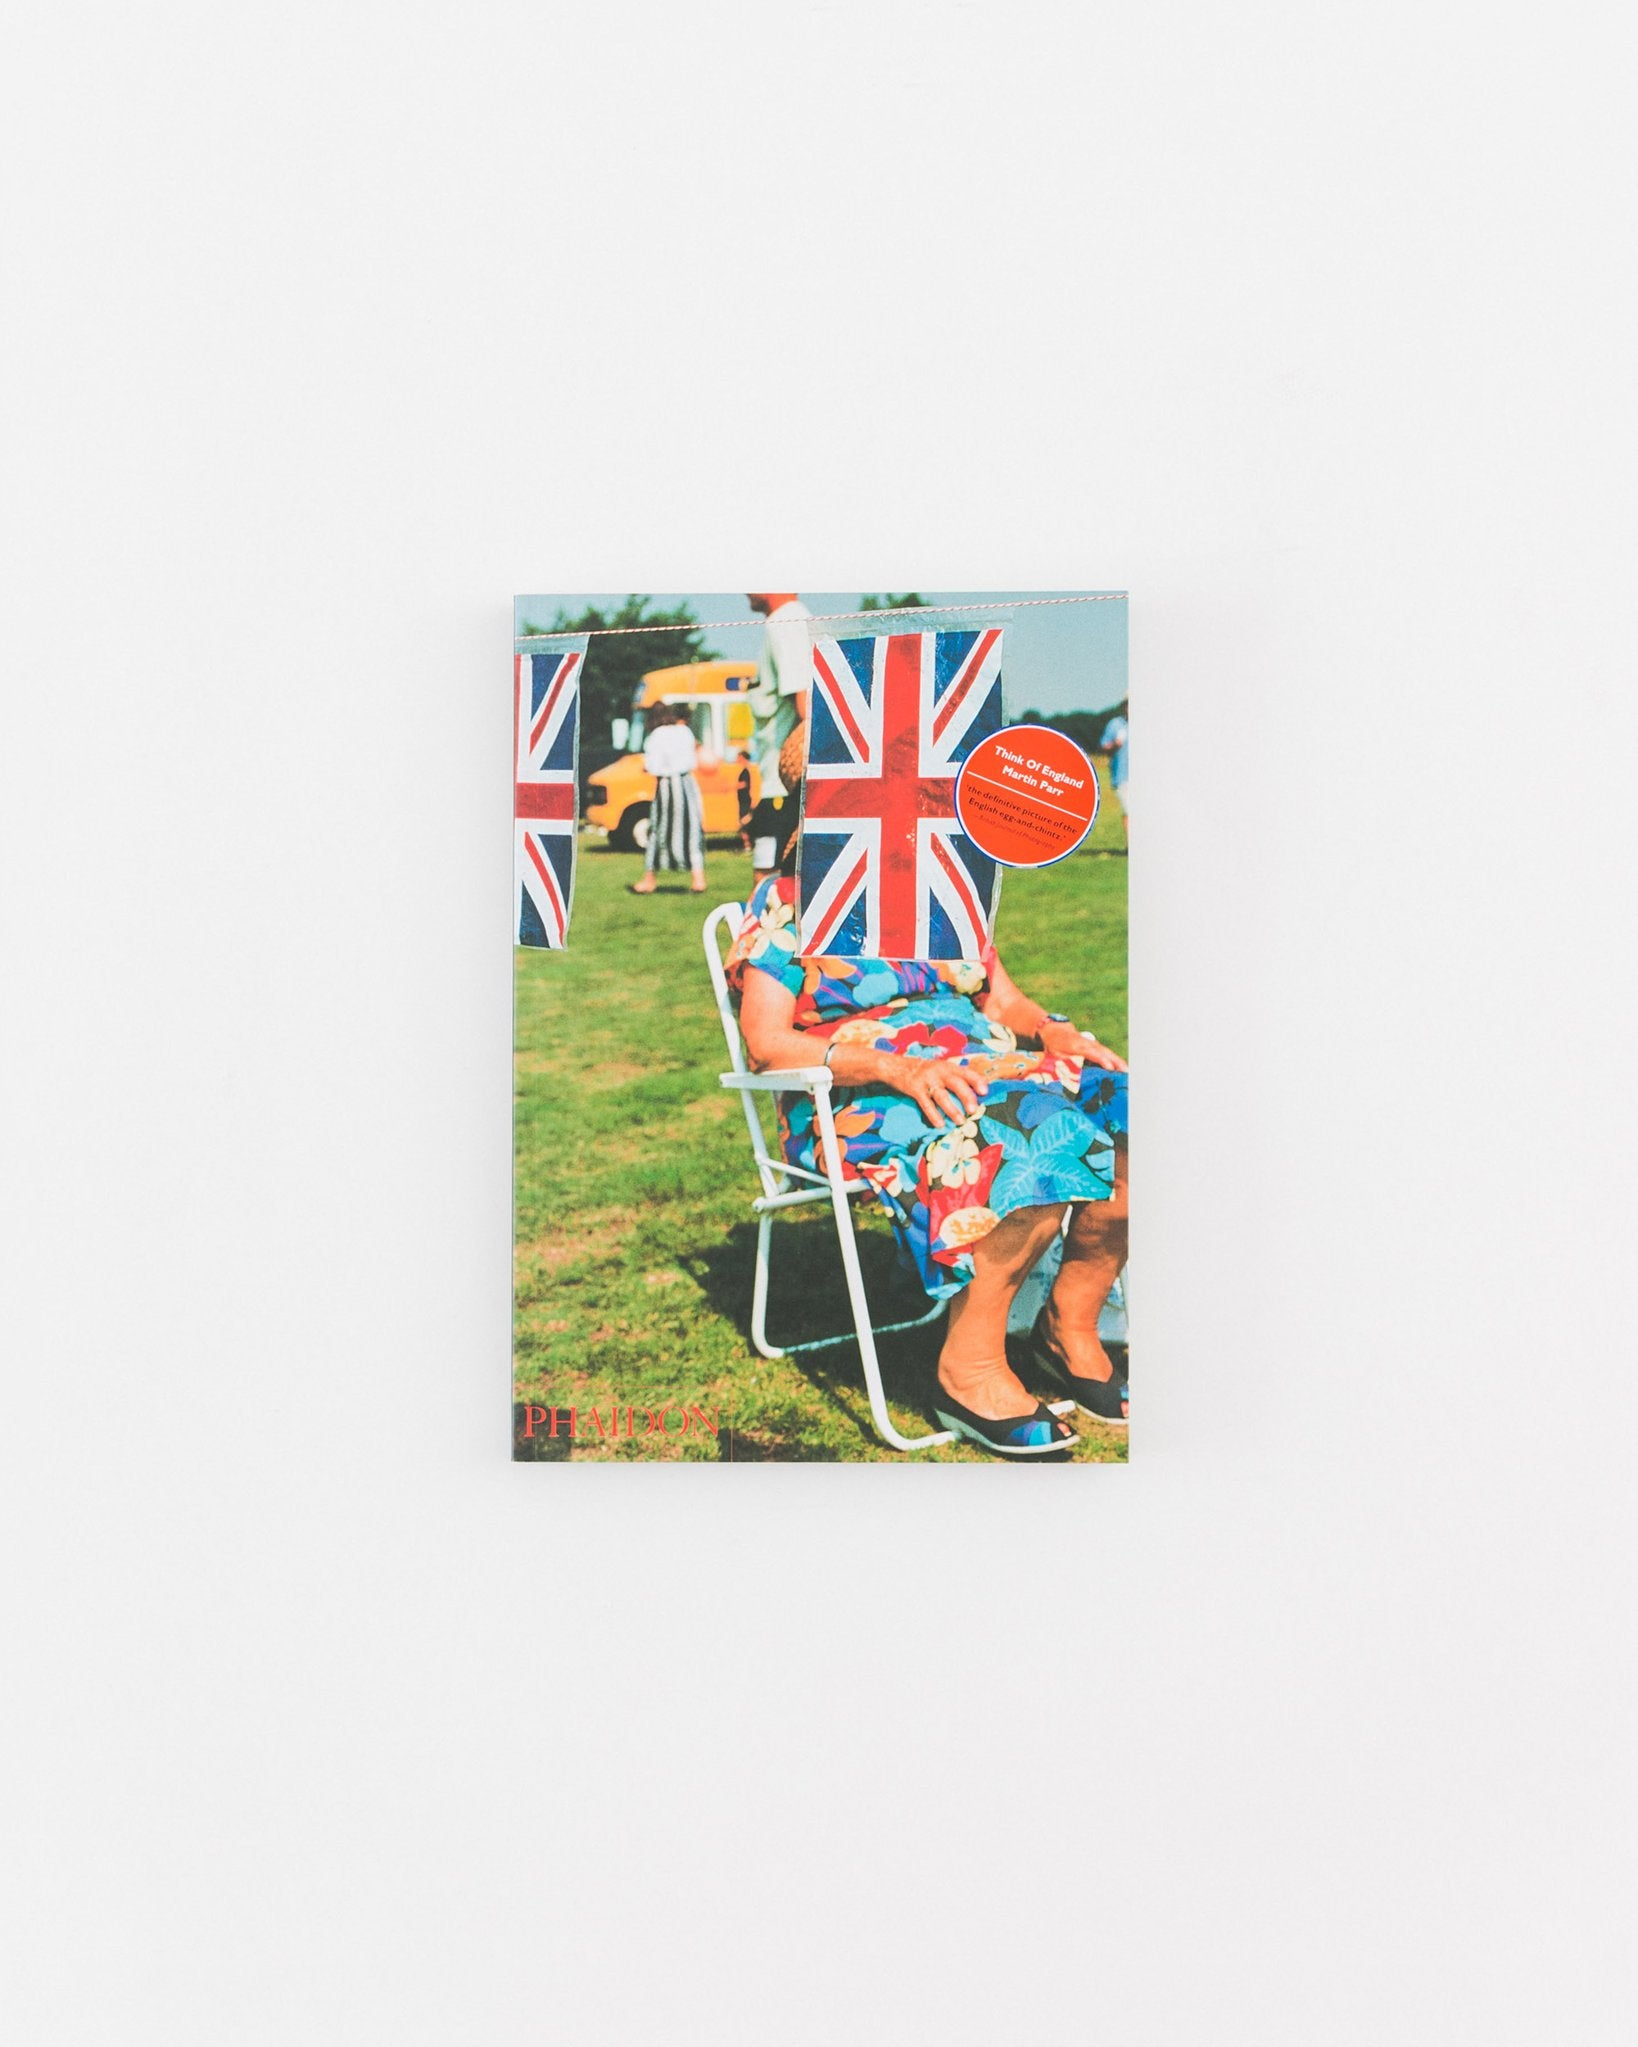 Martin Parr - Think of England